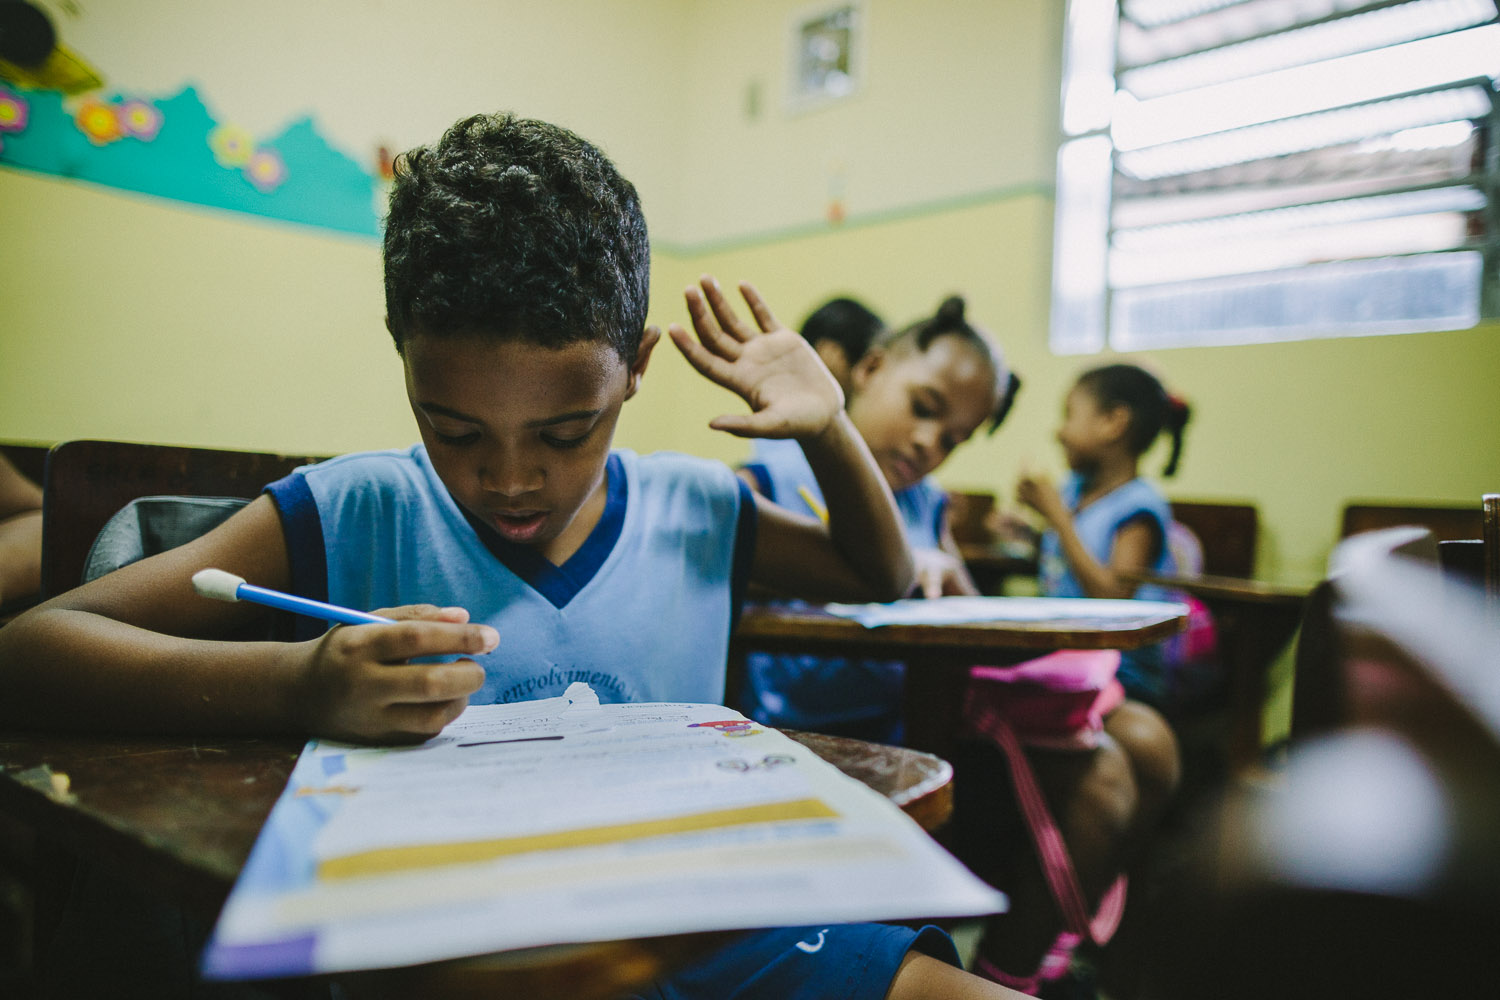 Emidio enjoys learning and is often seen asking the teacher for help and clarification. Emidio during classes at the Compassion Center.